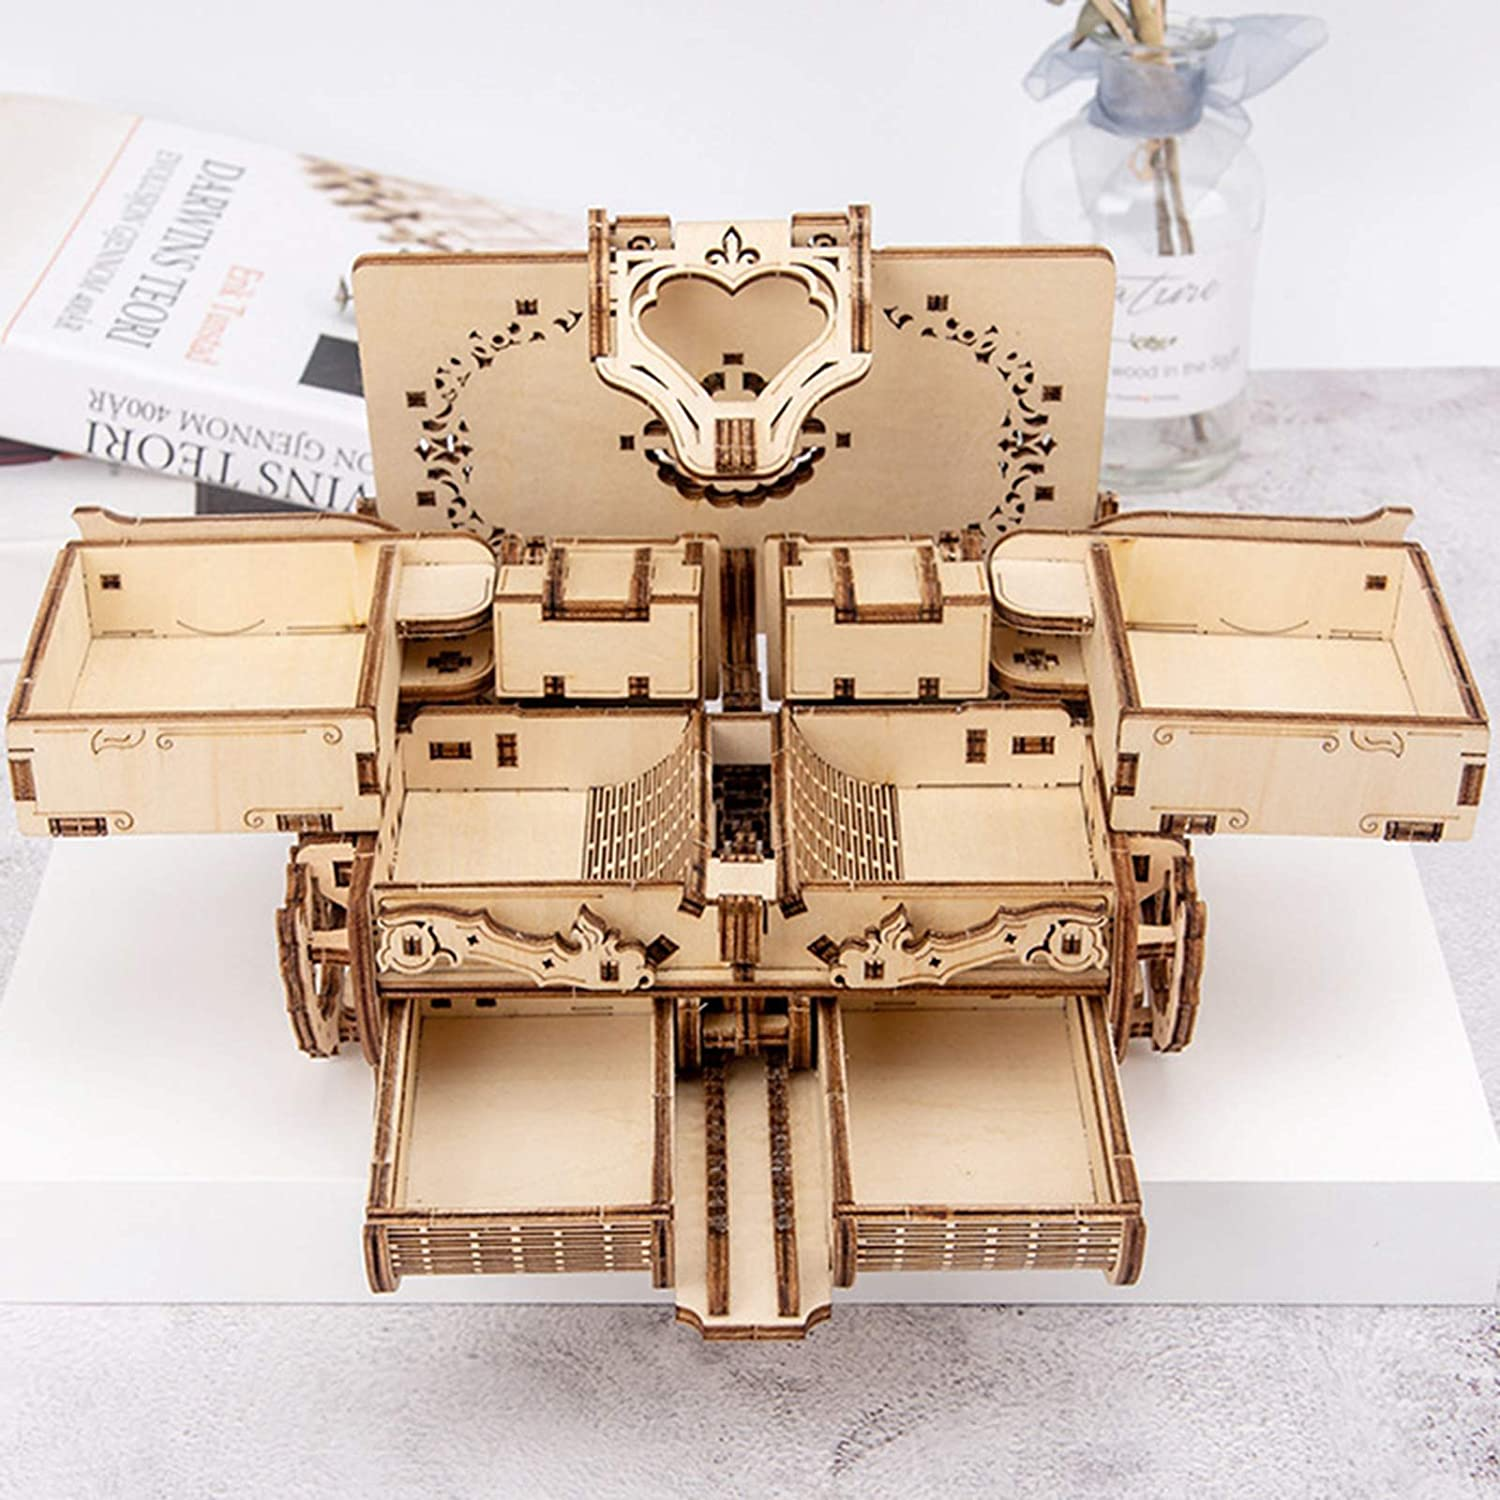 lahomia DIY Treasure Box Wooden Puzzle Self Assembling Mechanical 3D Model Kit,Exercise Willpower